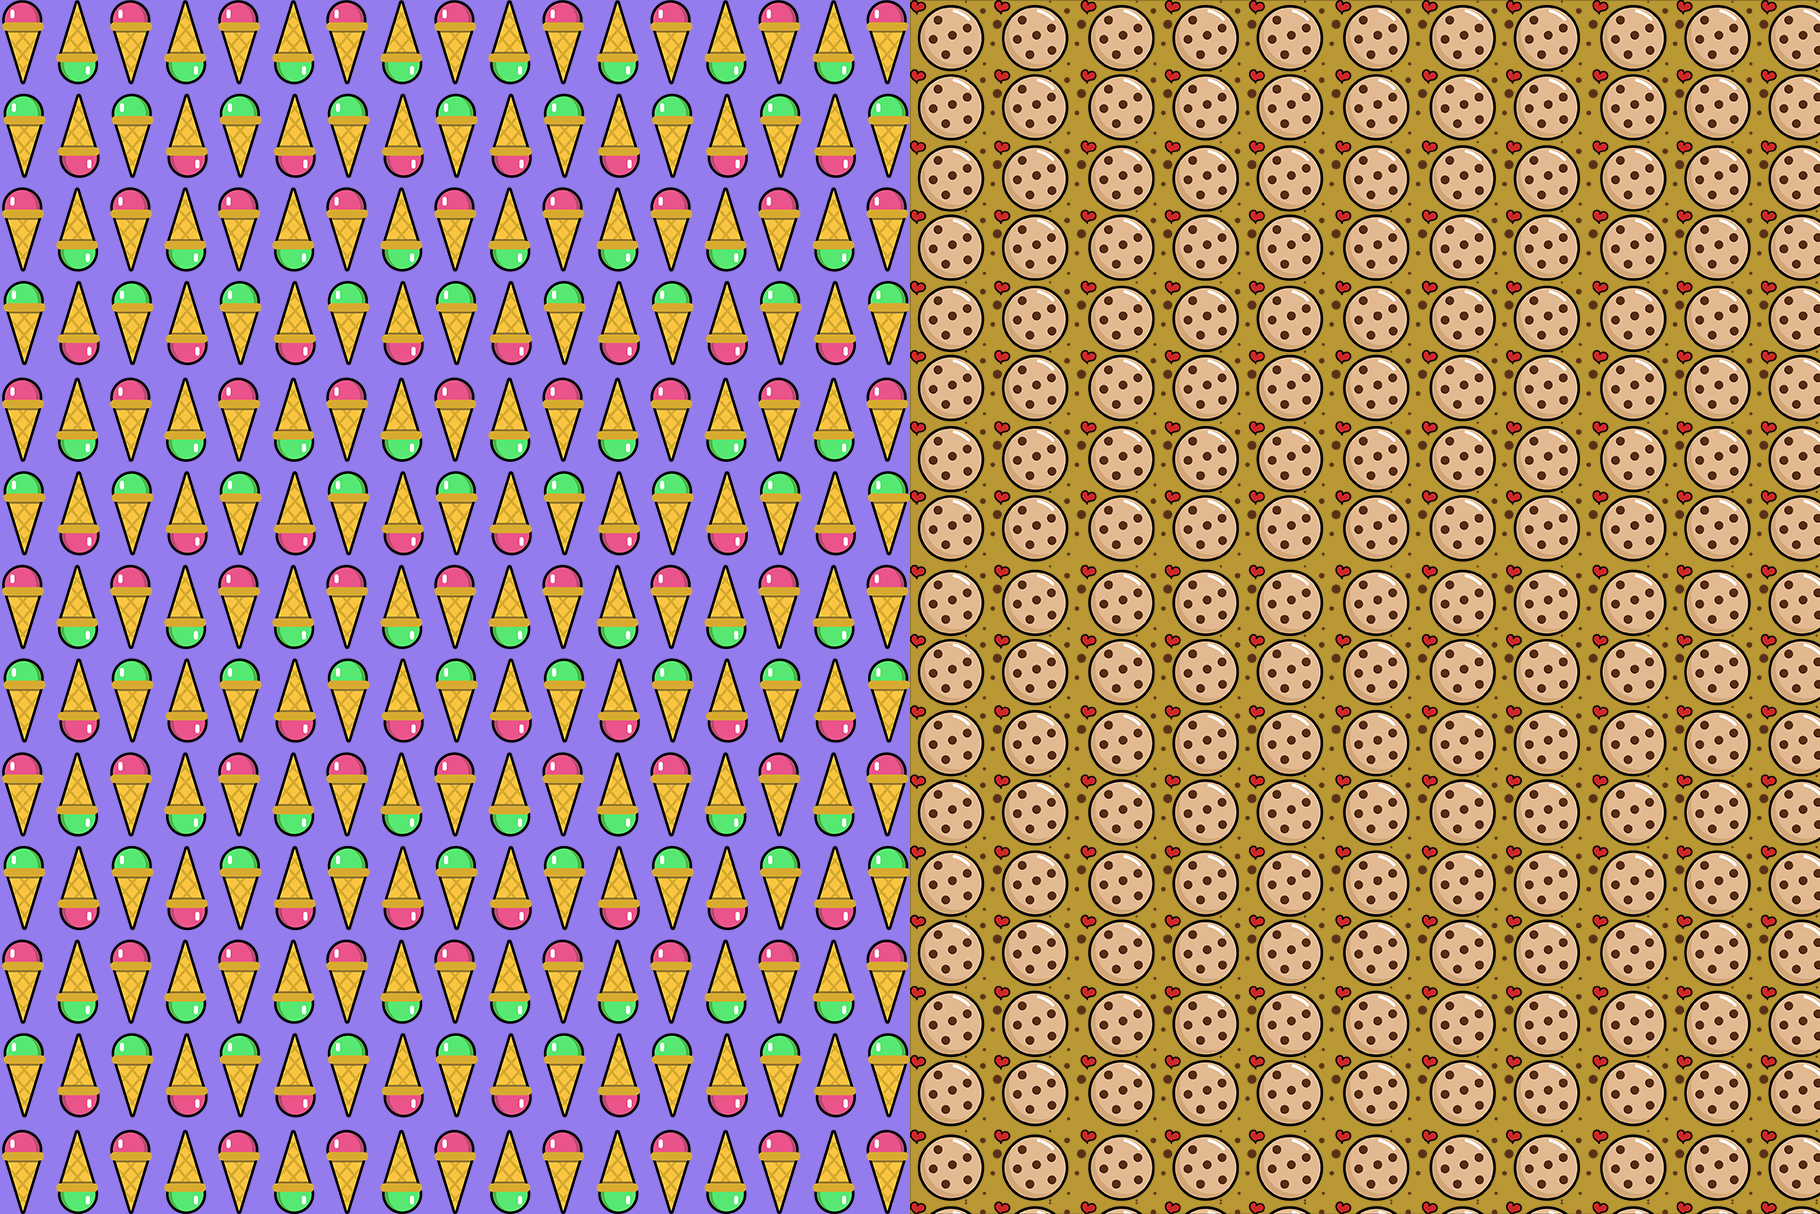 10 Sweets Seamless Patterns example image 7